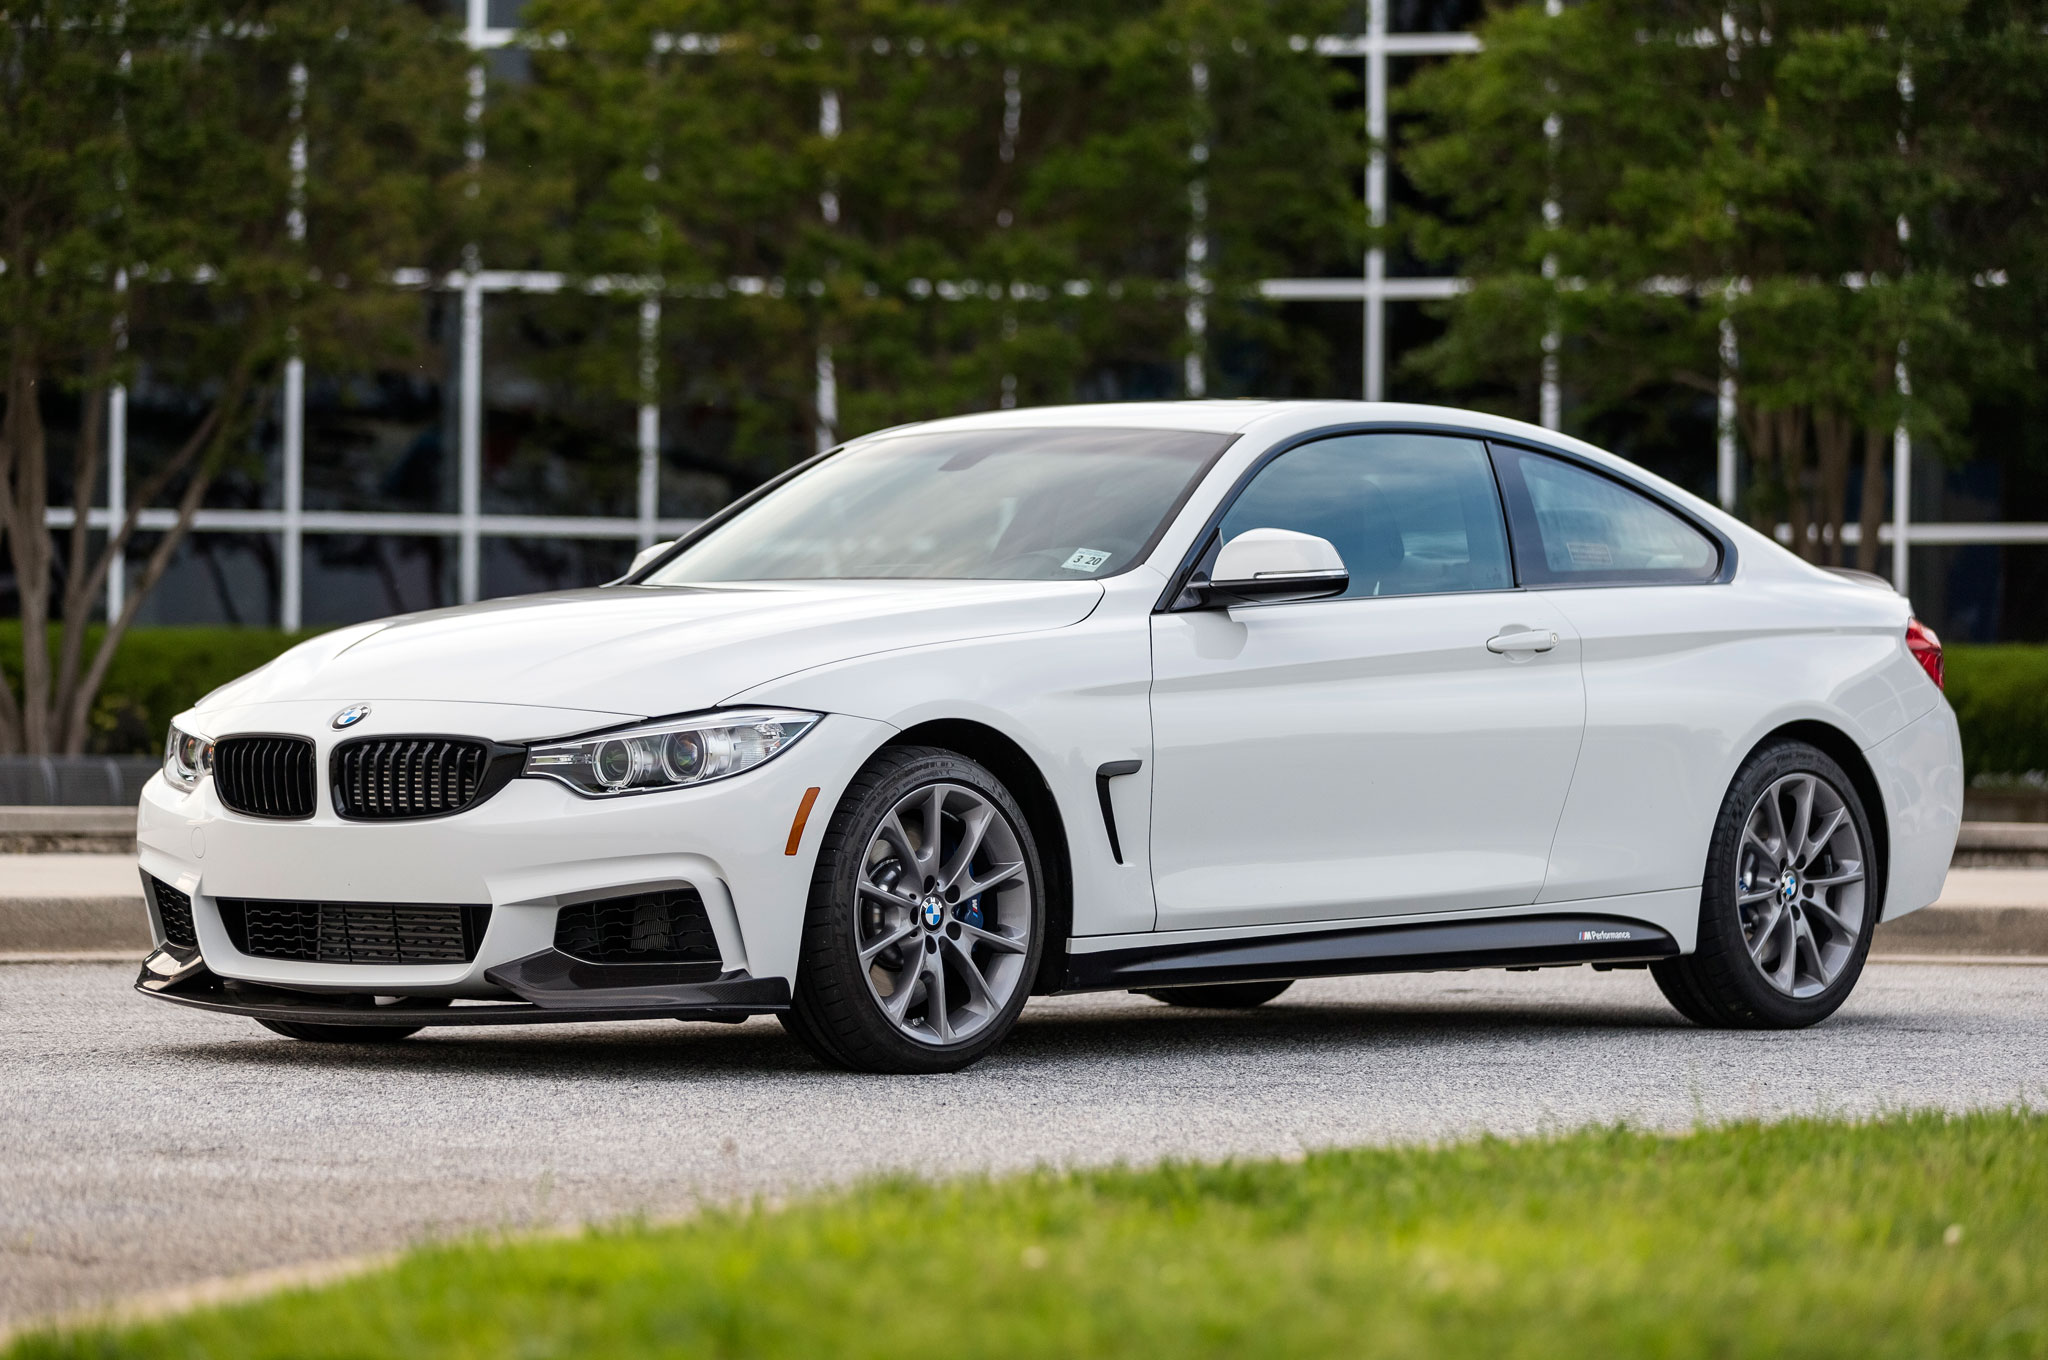 2016 BMW 435i ZHP Coupe Edition Gains 35 HP Upgraded Chassis